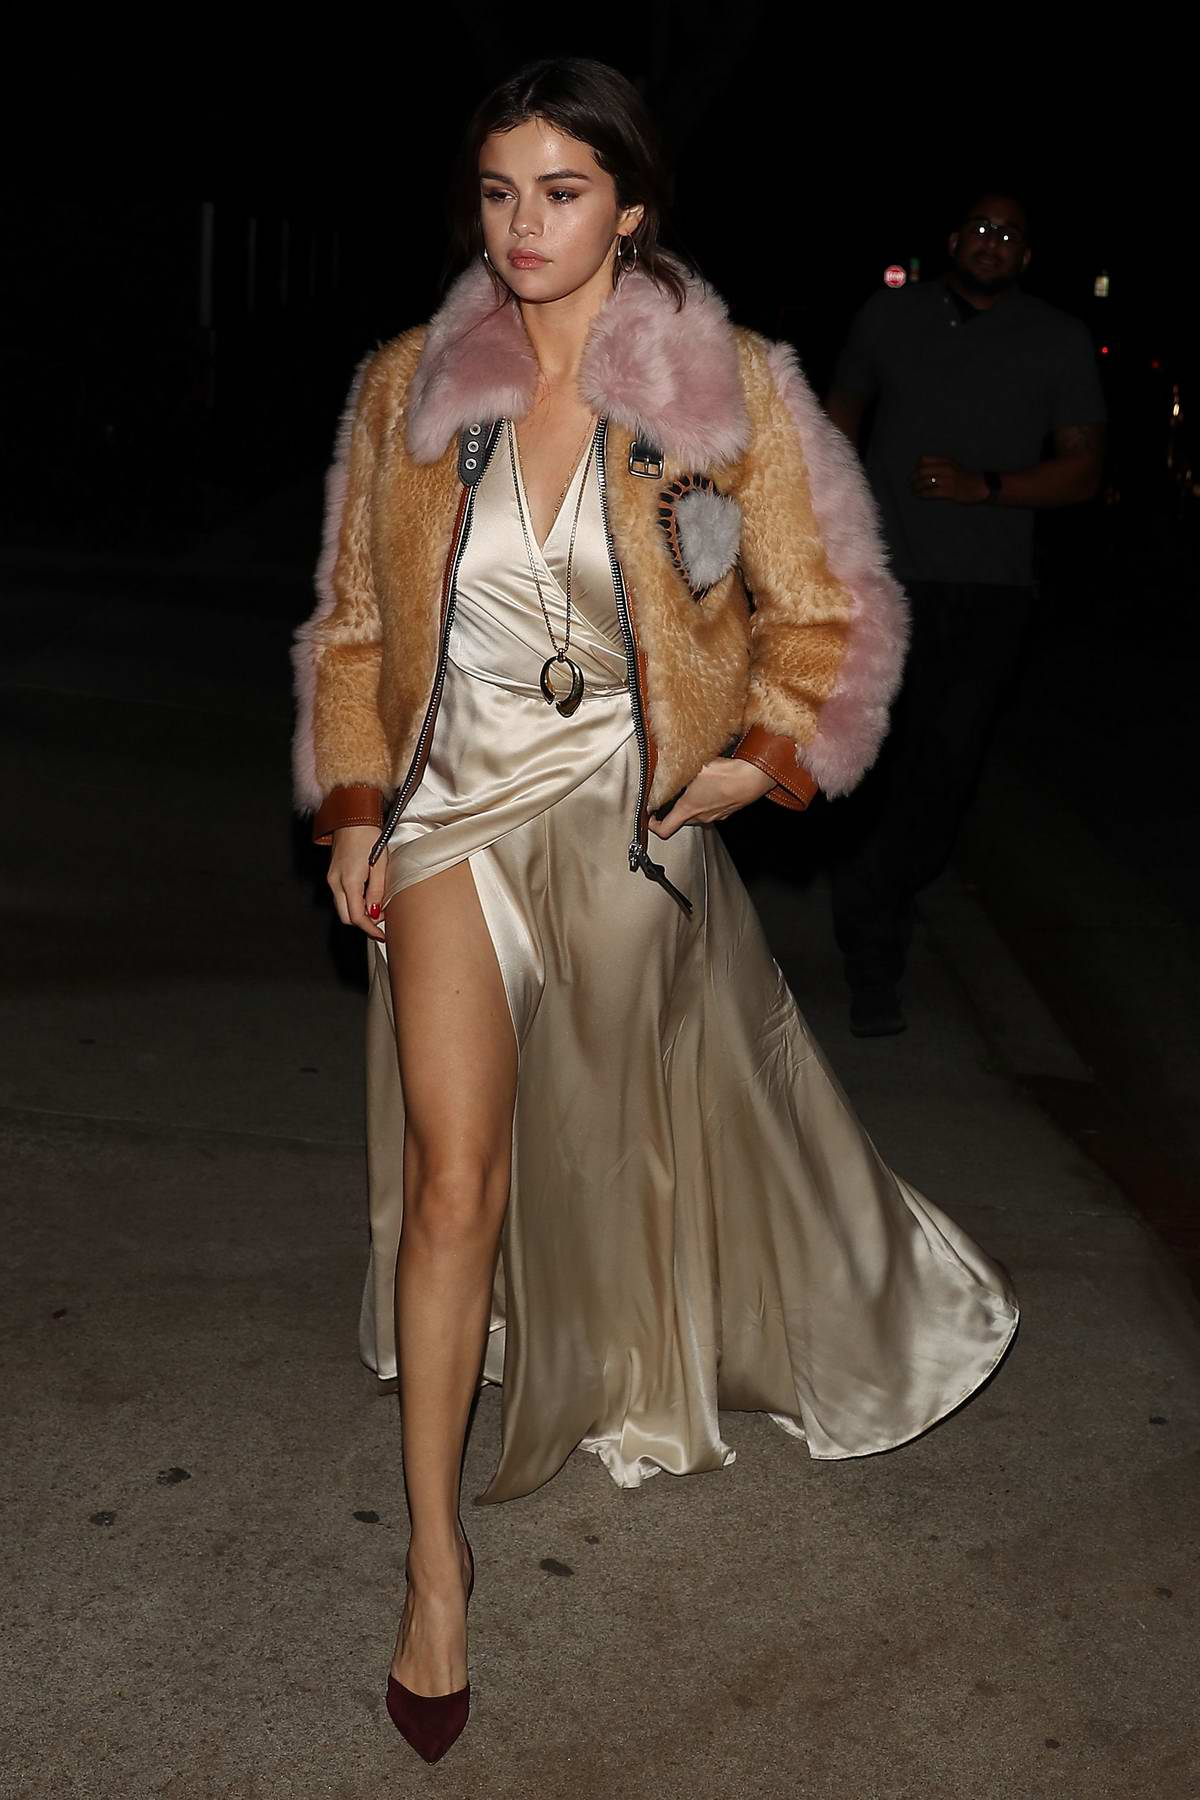 Selena Gomez wore a cream satin dress with a cropped fur jacket during a night out with friends in Los Angeles